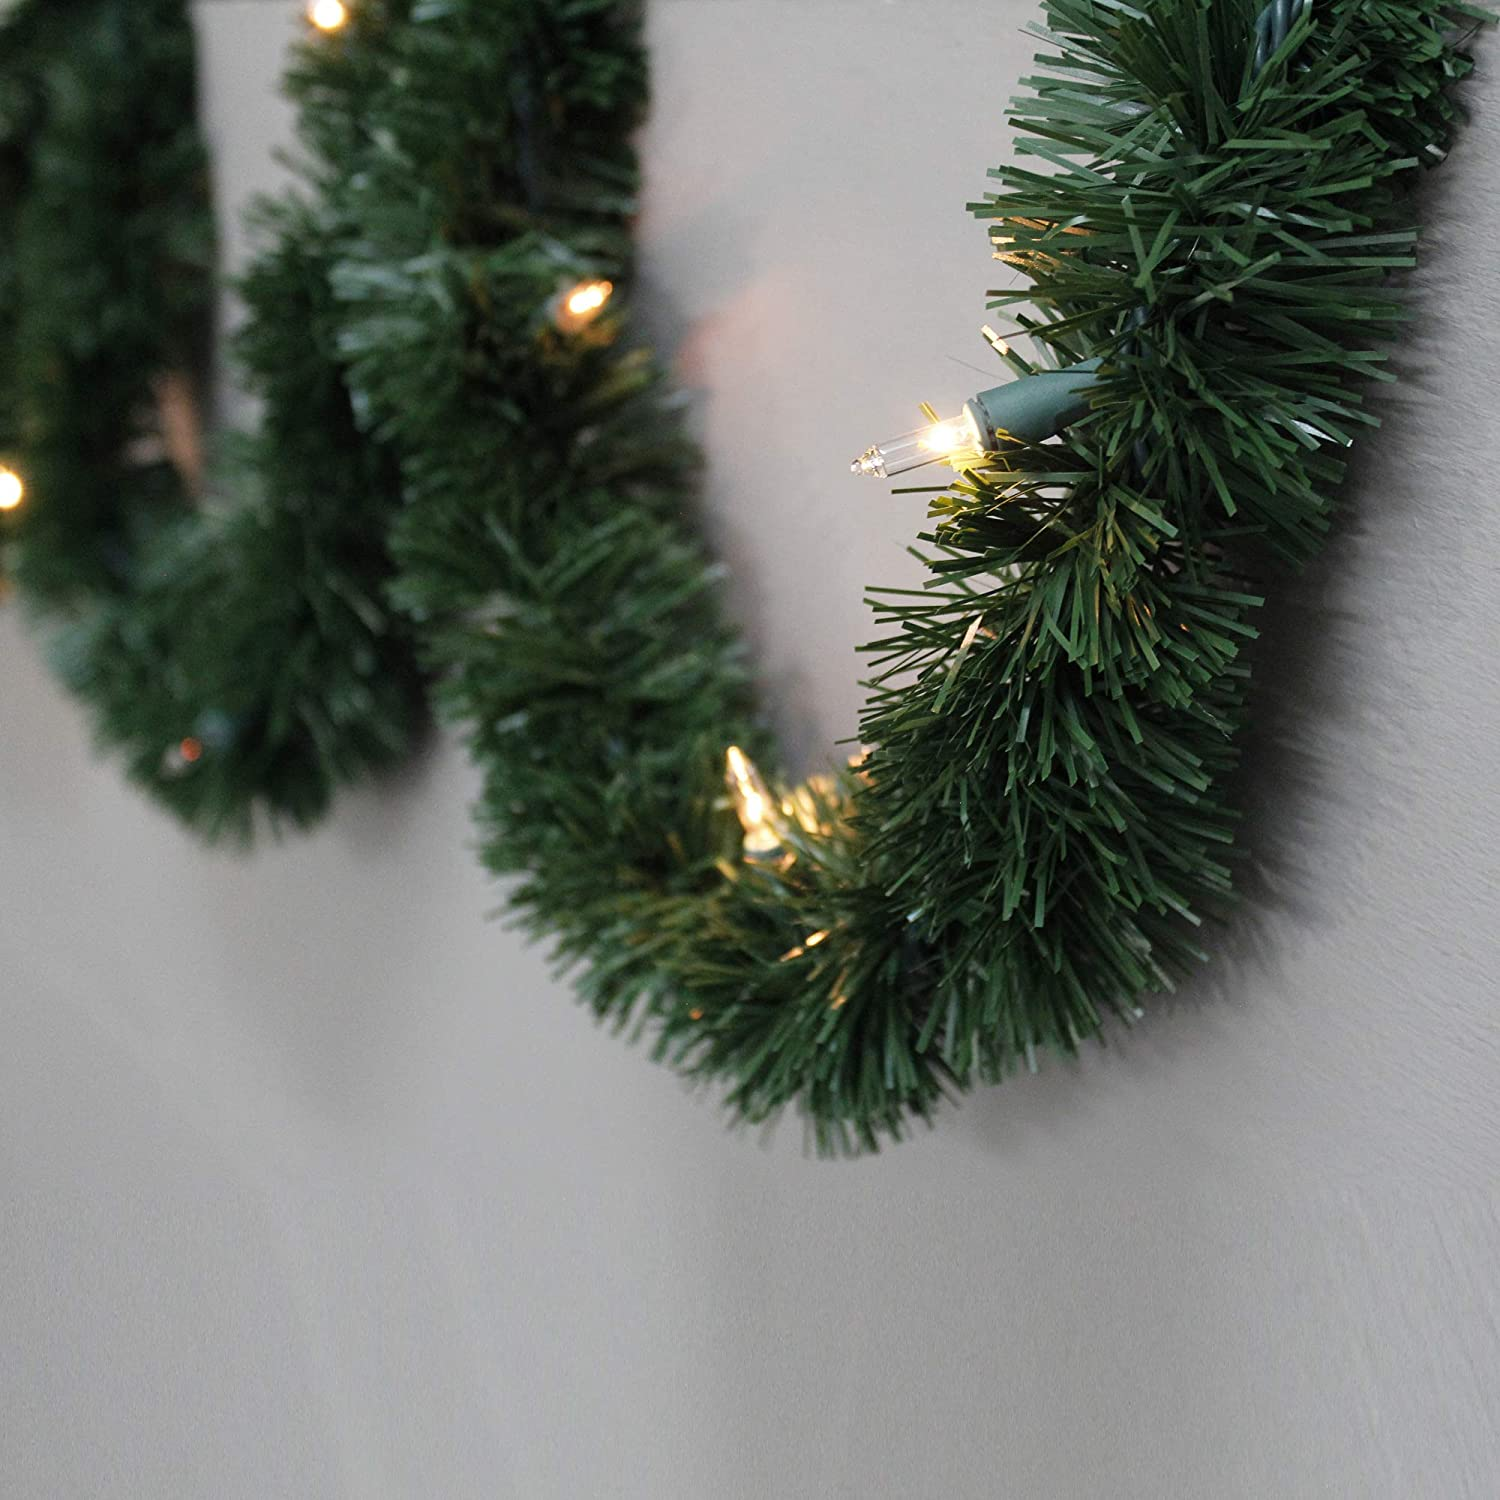 Brite Star 12-Feet Direct Plug in Lighted Pine Garland with 35 Count Clear Mini Lights